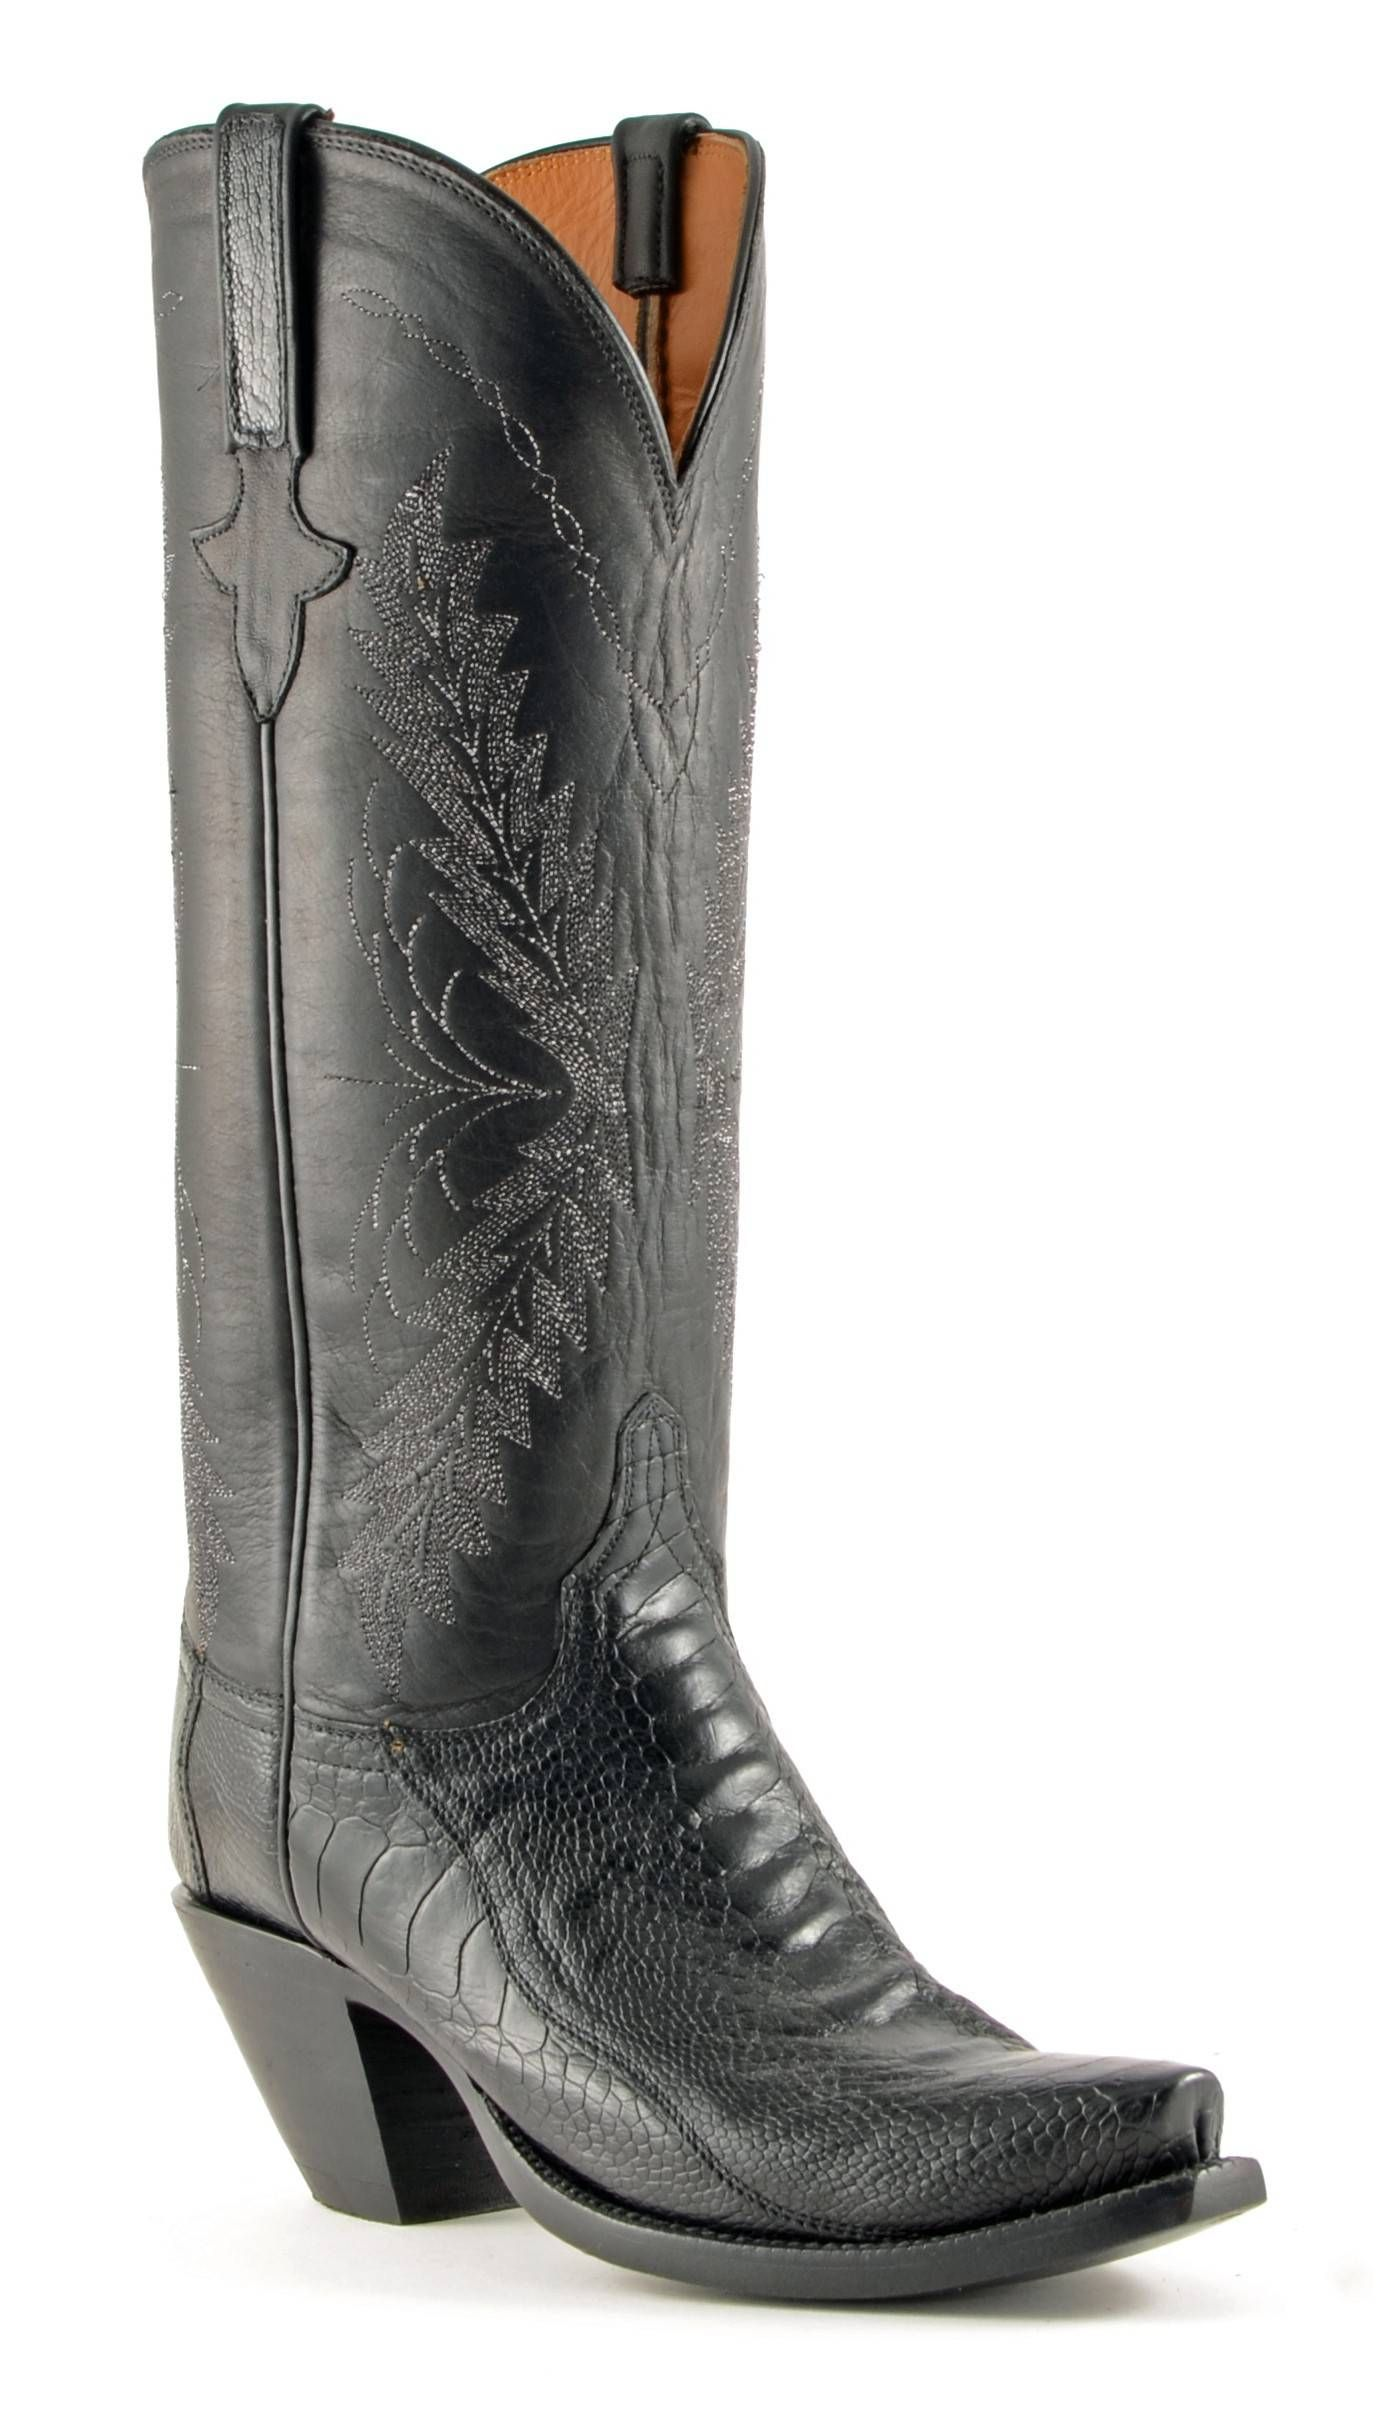 Gc9860 Allens Boots Women S Lucchese Classics Boots